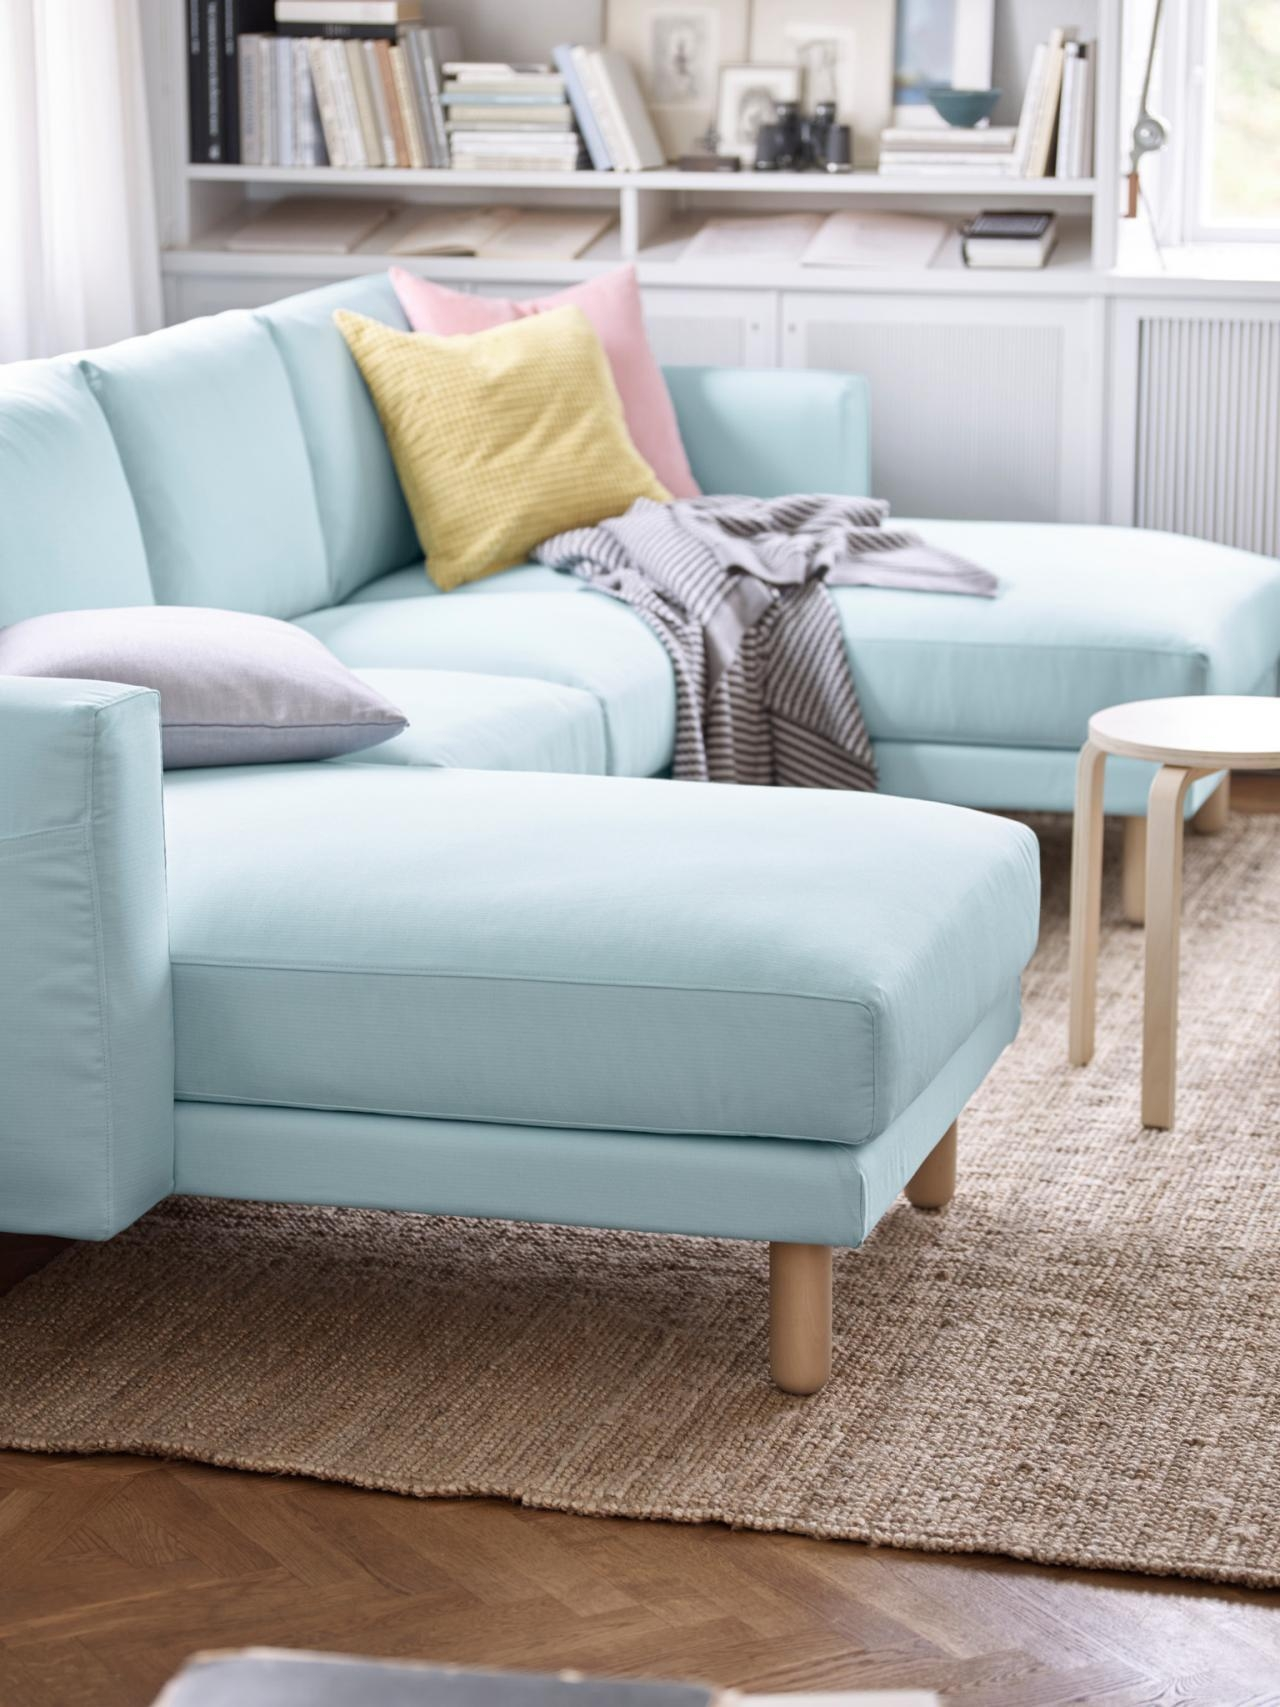 5 Apartment Sized Sofas That Are Lifesavers | Hgtv's Decorating within Apartment Size Sofas and Sectionals